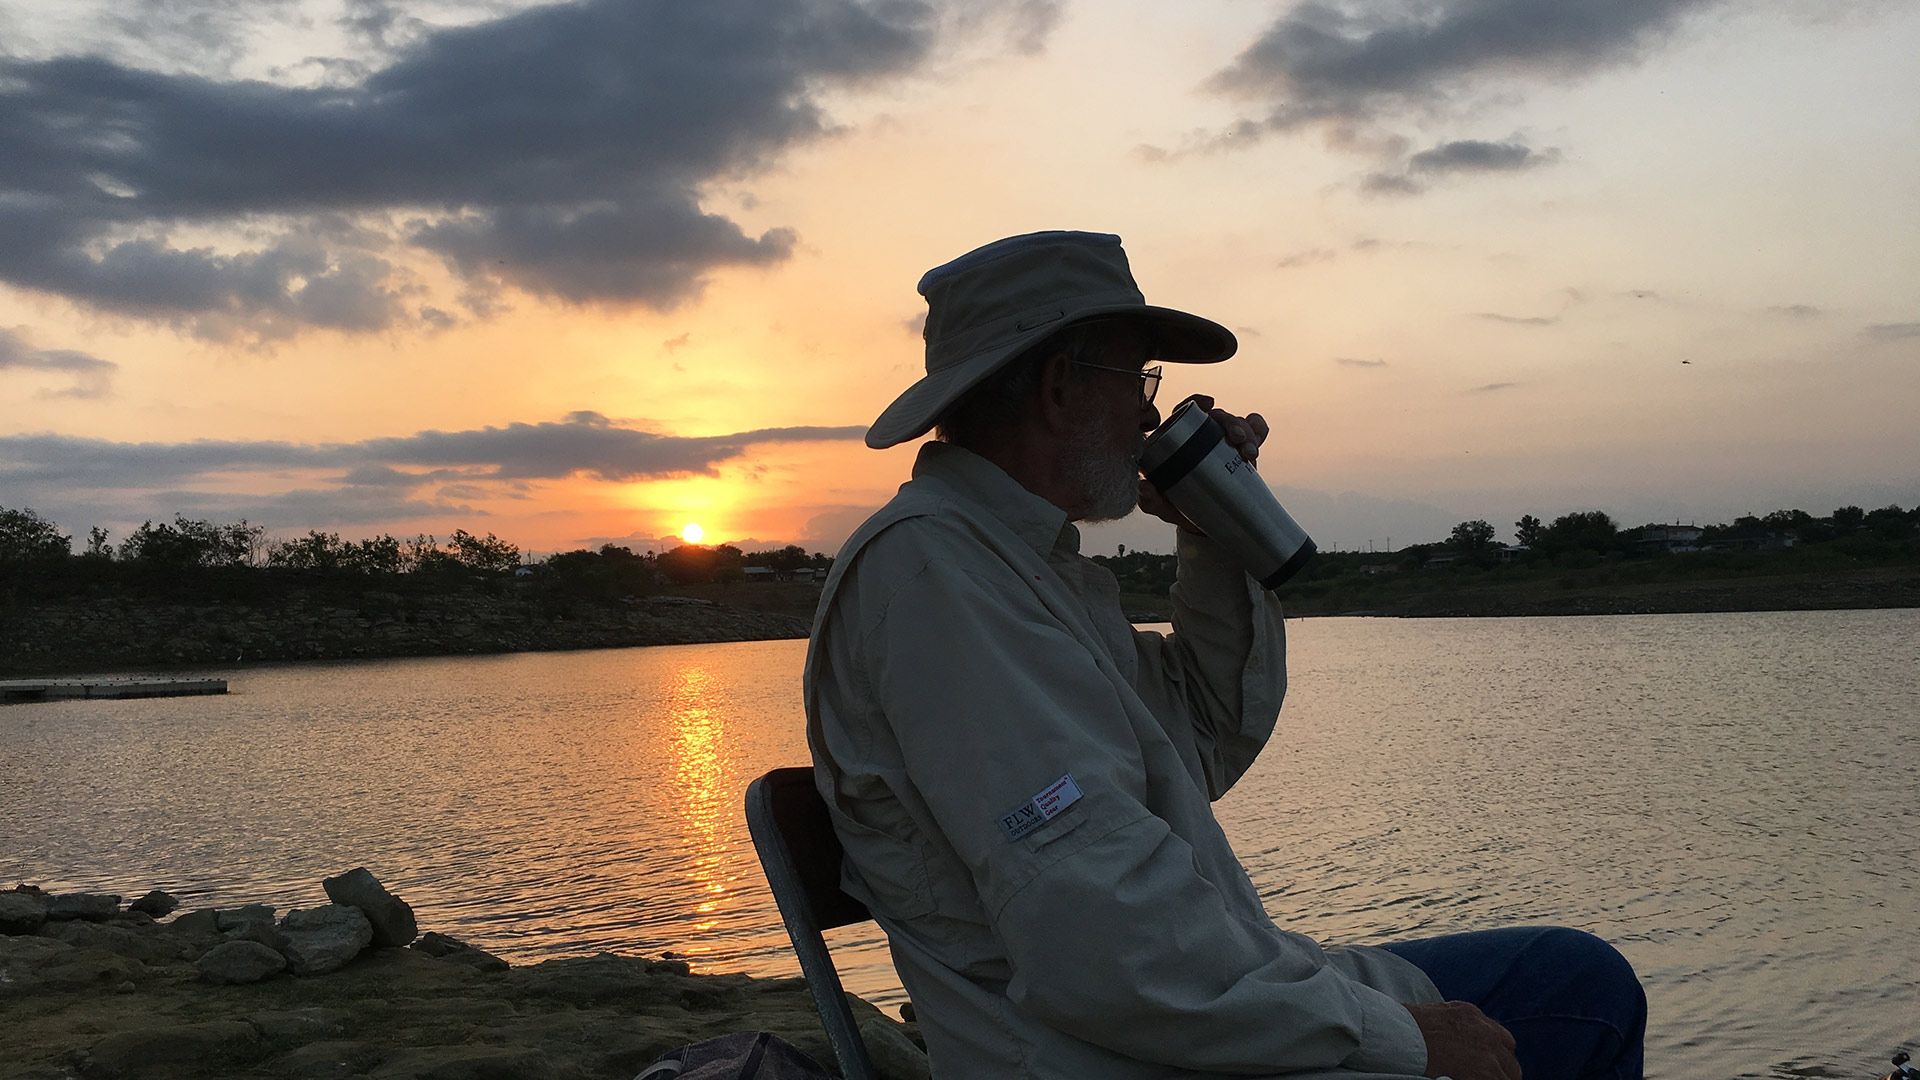 David Loftis fishing for bass from Falcon Lake in Zapata County, Texas. He said he'd move if the United States needed him to in order to build a border wall.